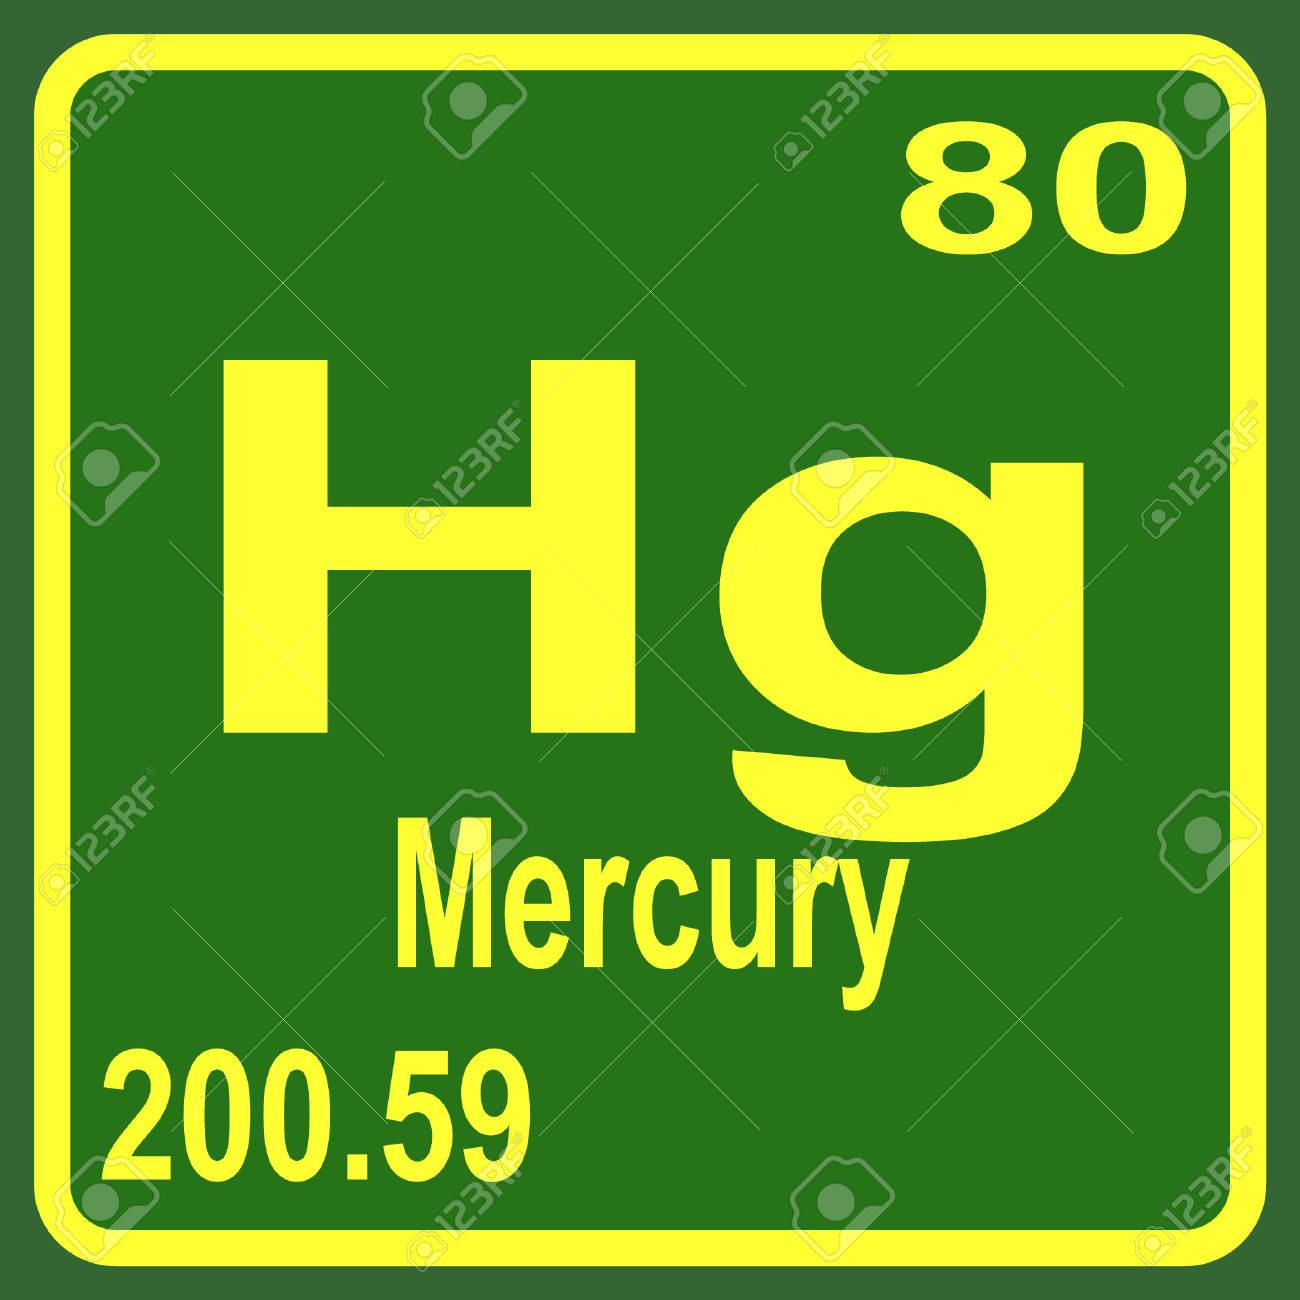 Periodic table symbol for mercury image collections periodic mercury periodic table symbol choice image periodic table images periodic table symbol for mercury image collections gamestrikefo Images